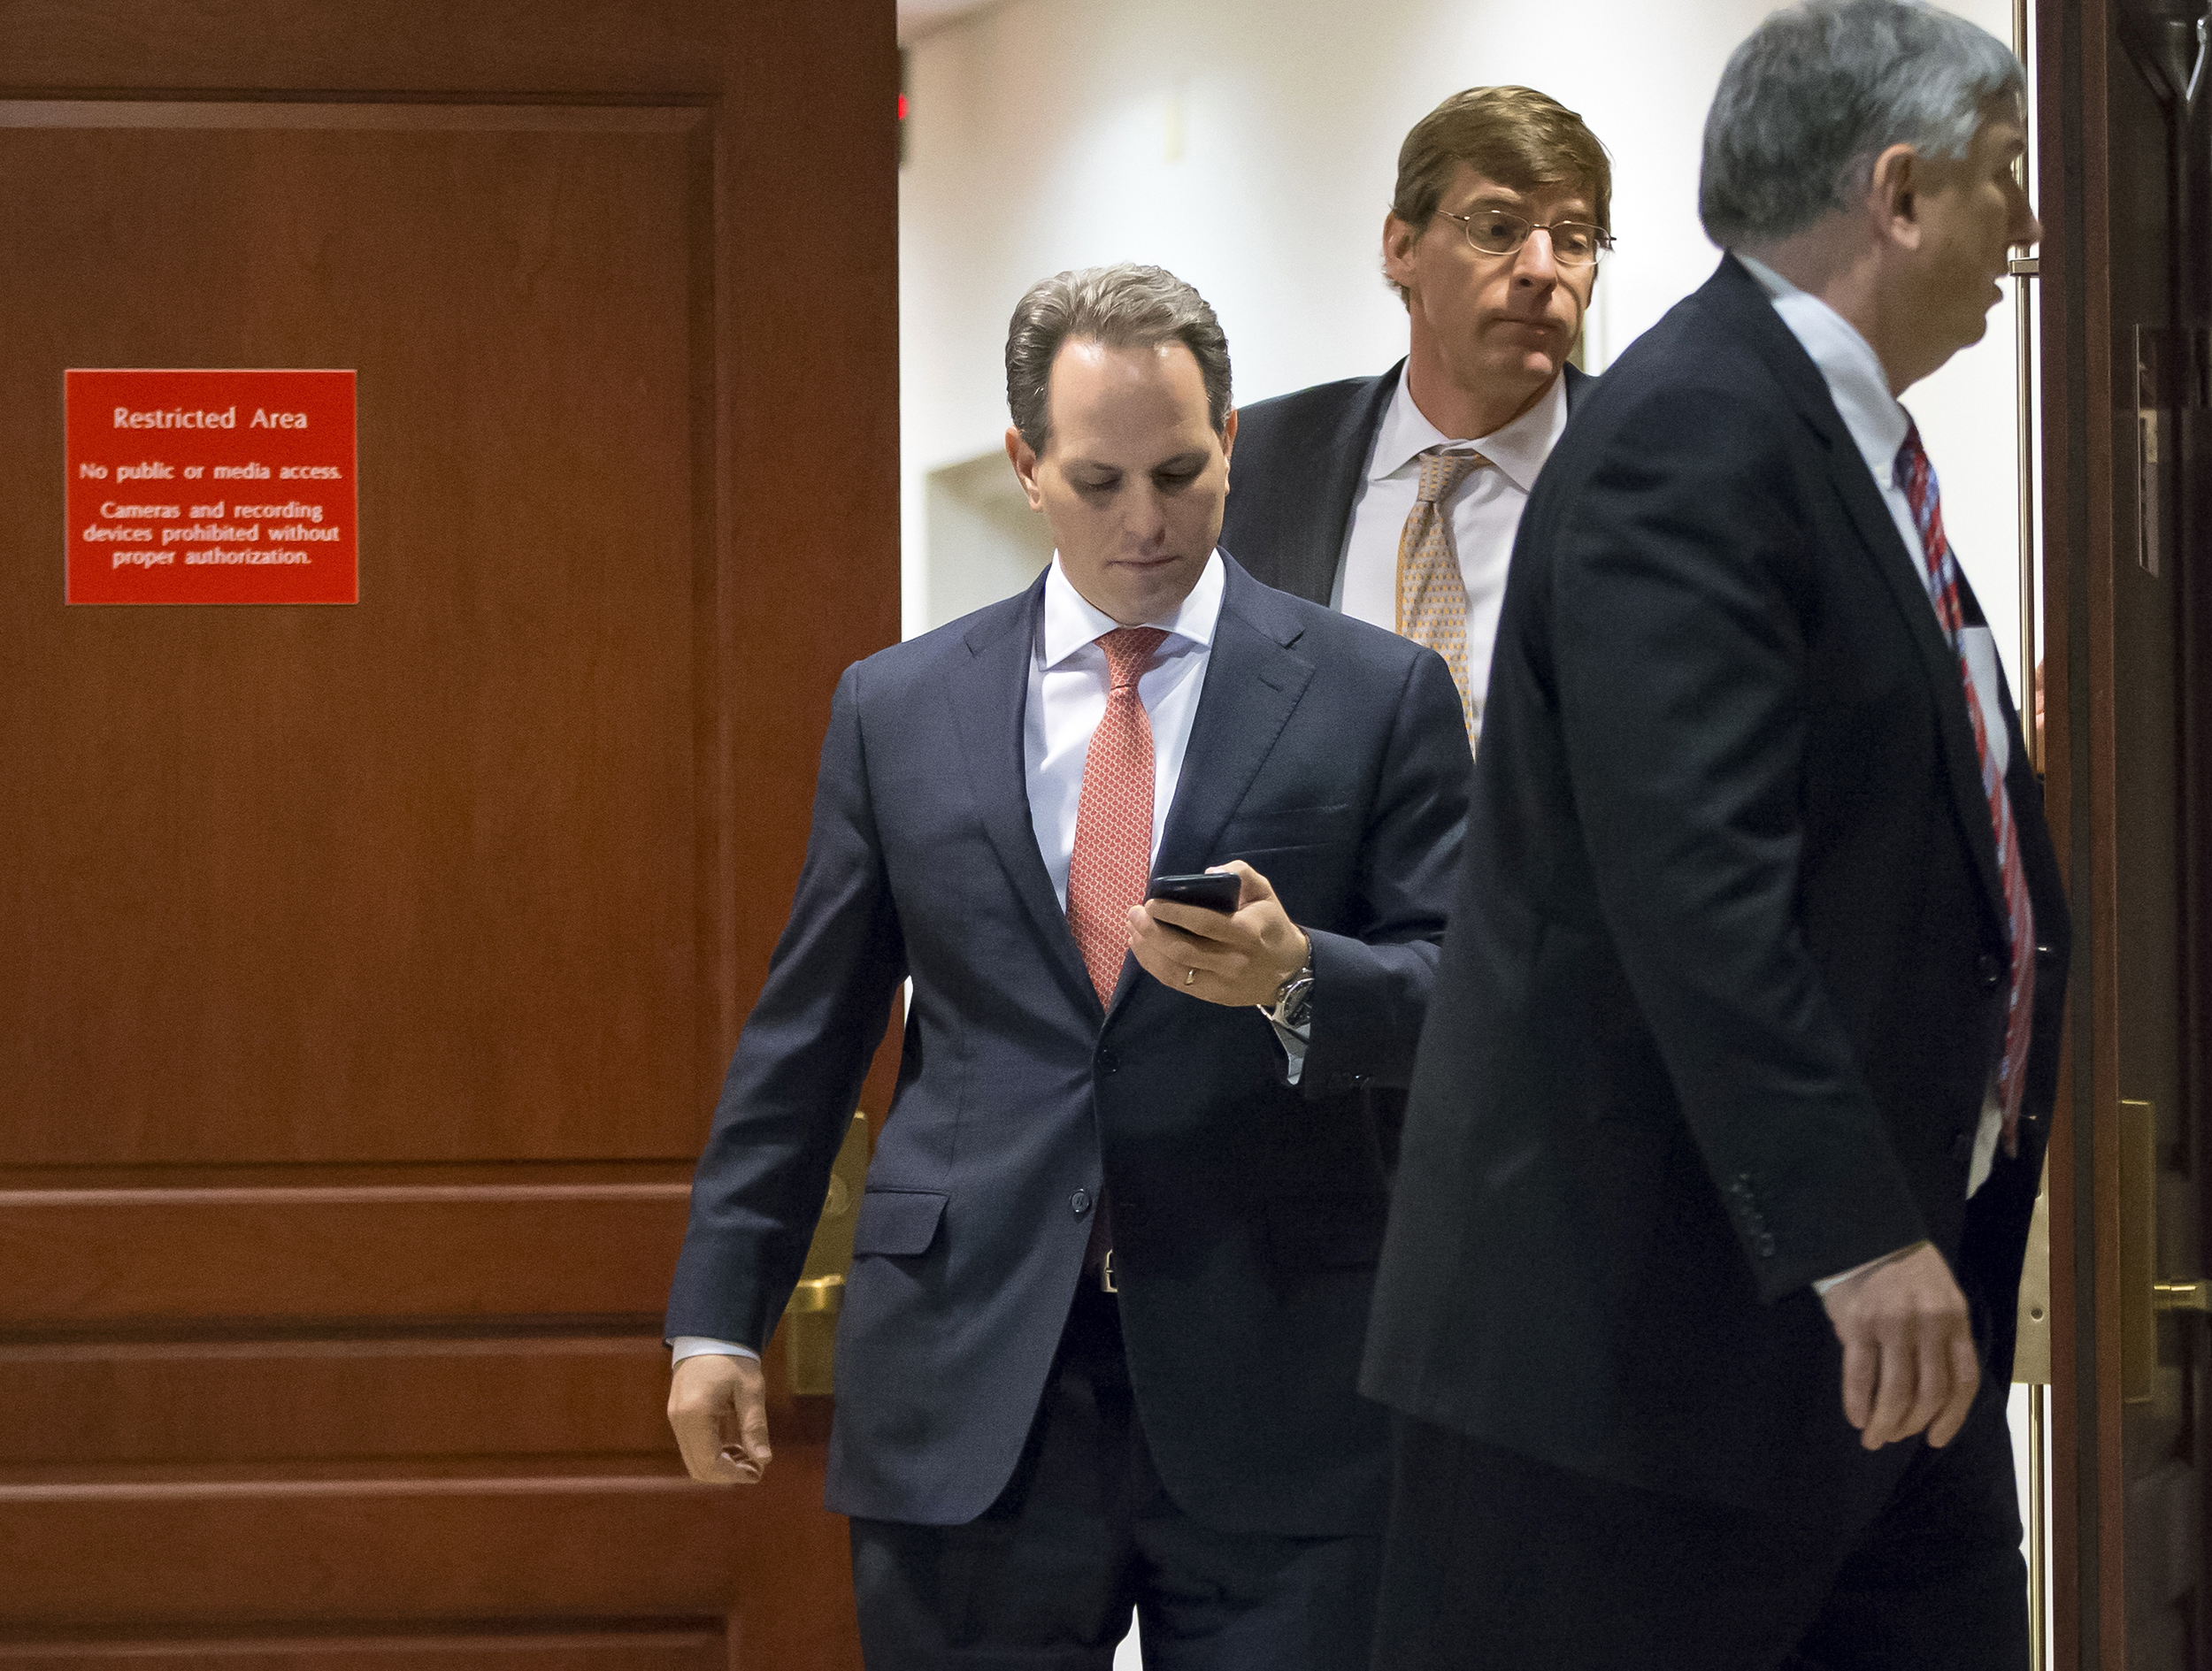 Ex-CIA Chief of Staff Jeremy Bash Says White House Is 'Runaway Train'